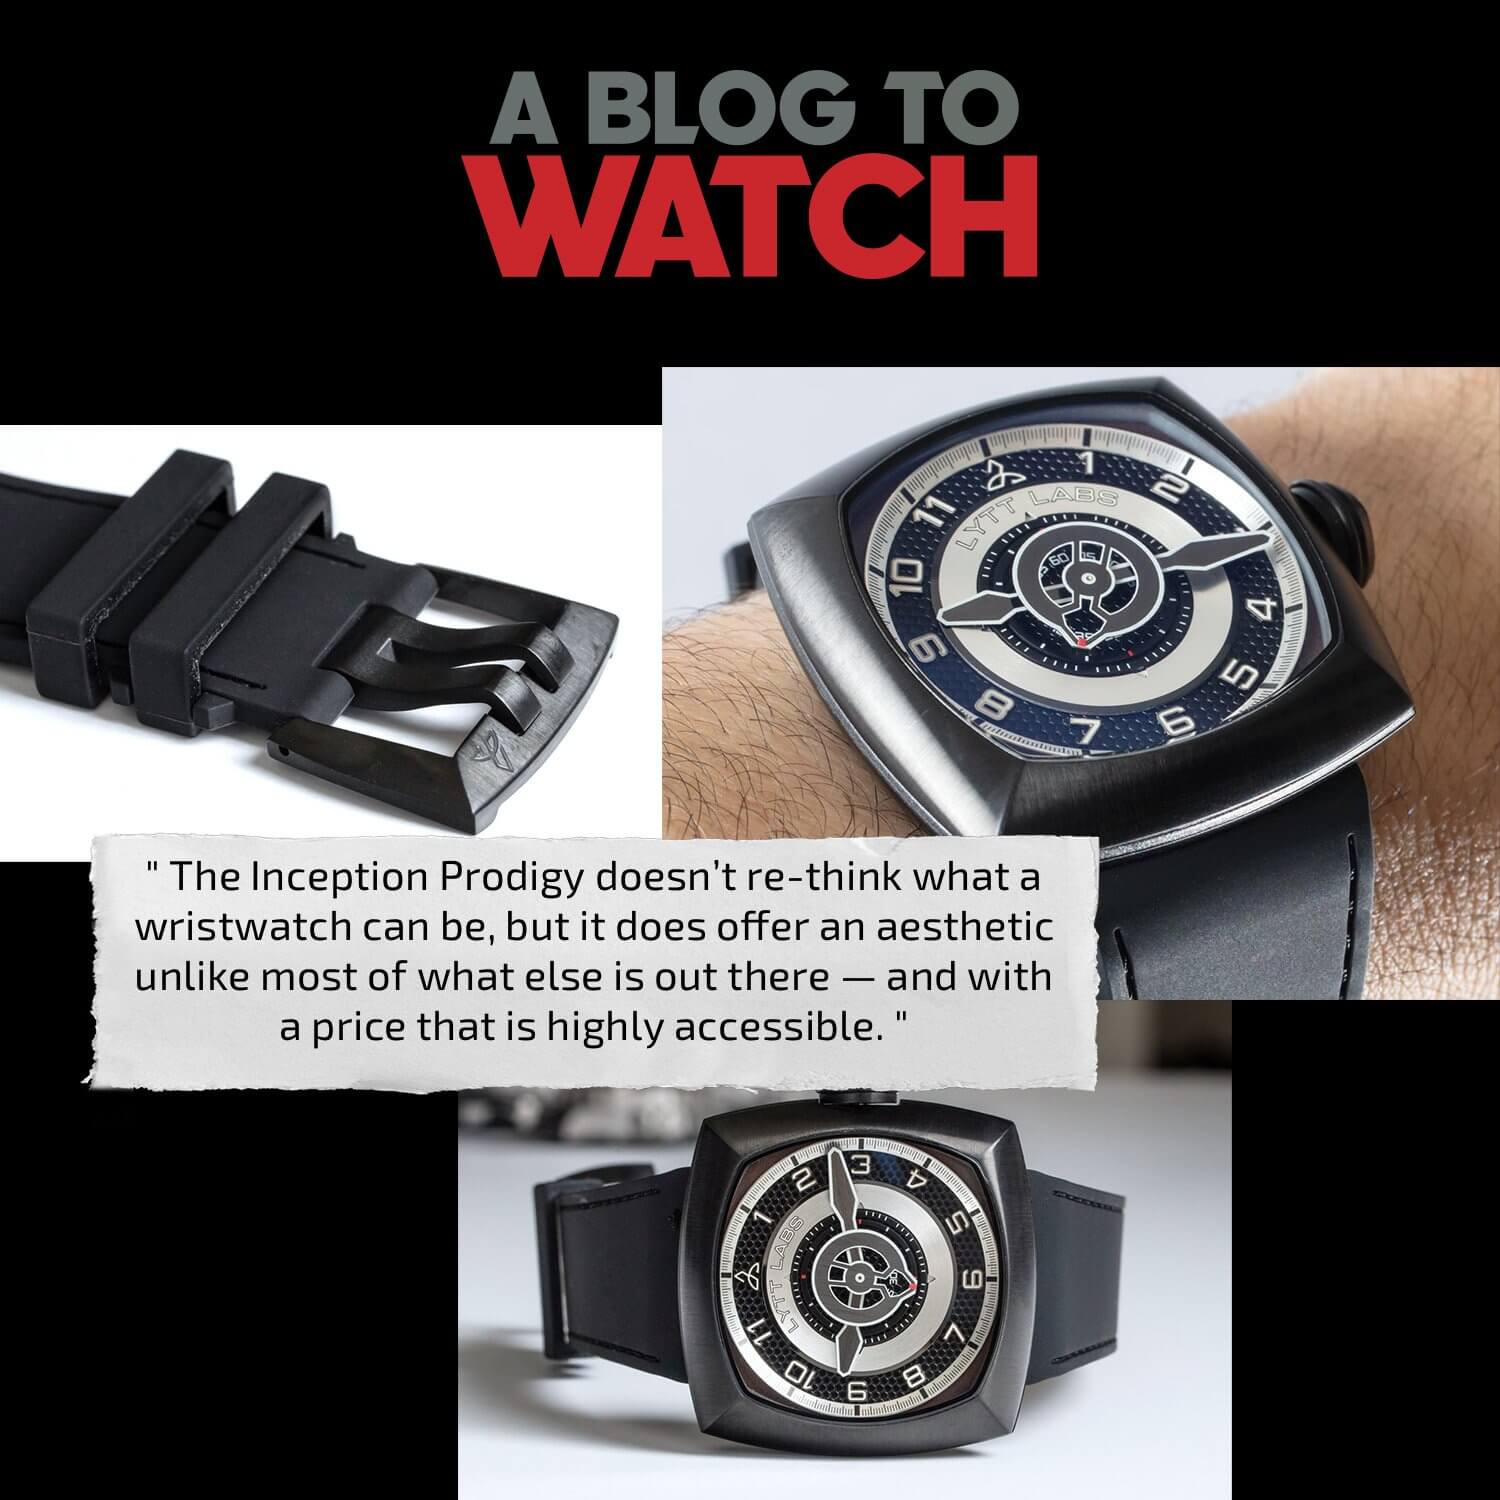 aBlogtoWatch<br>Wrist Time Reviews <br> by Ariel Adams